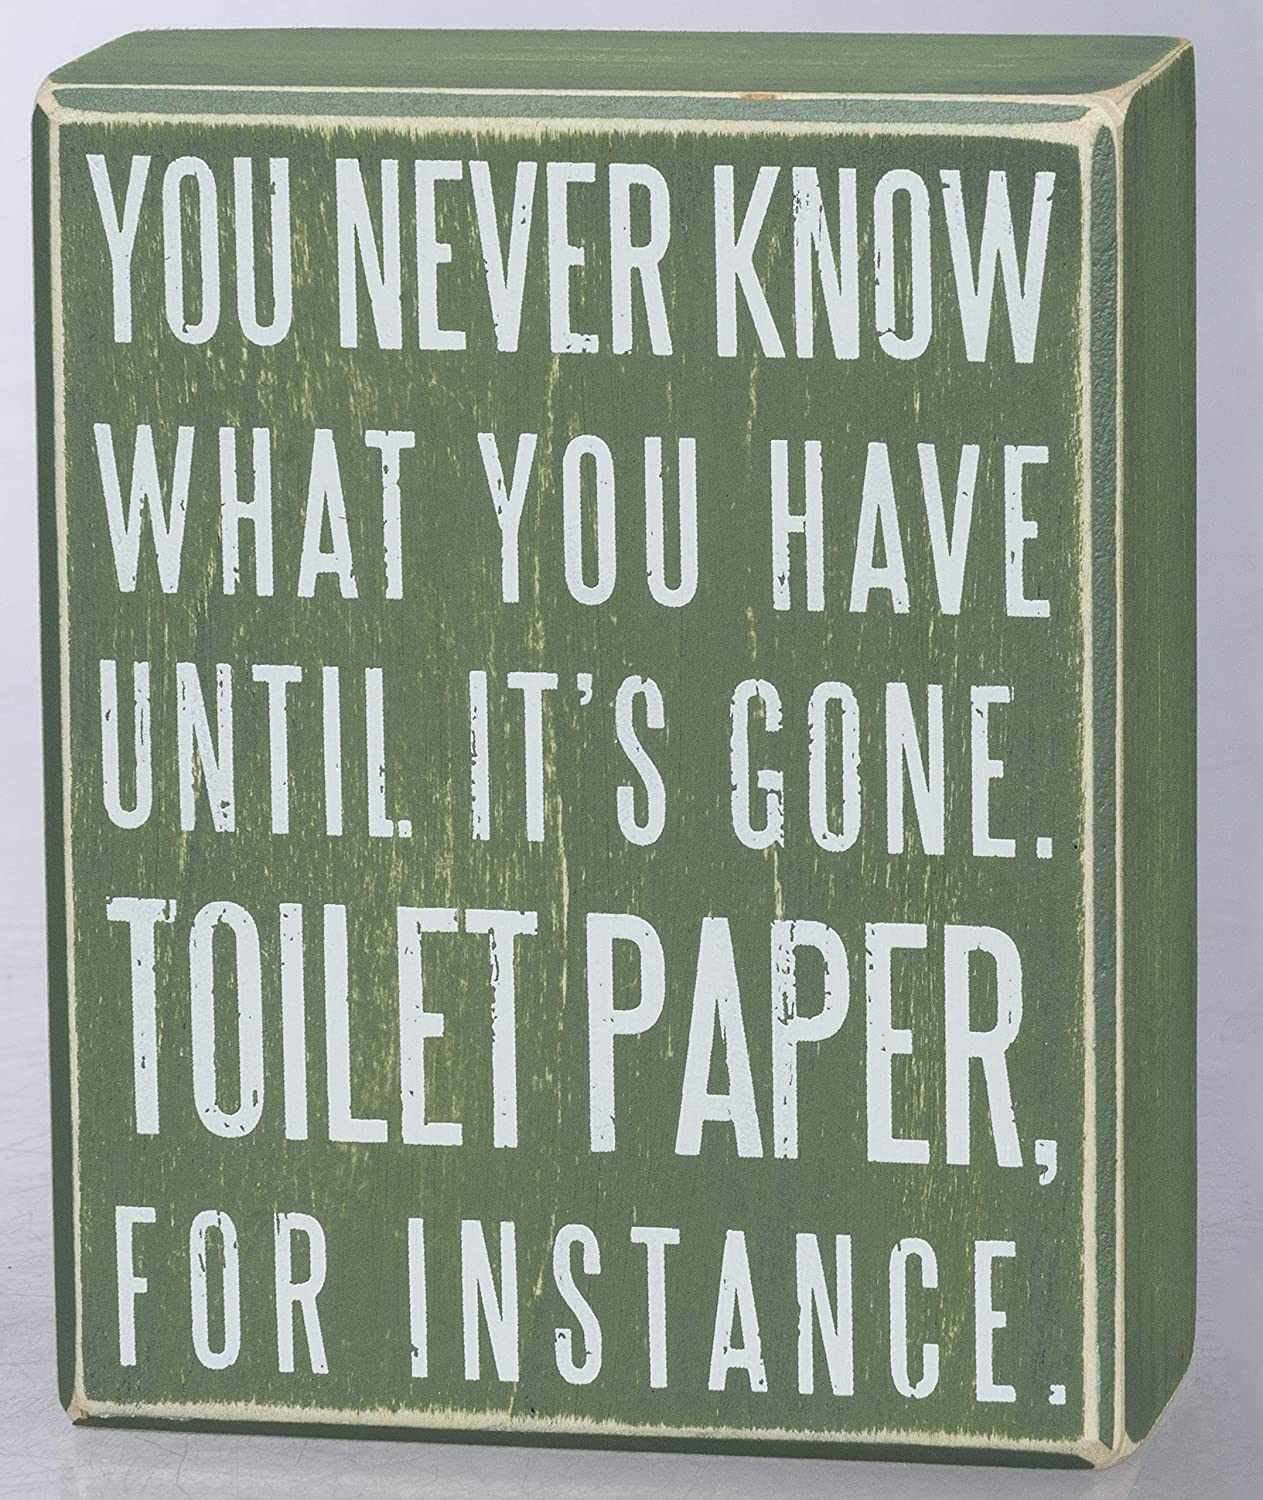 Primitives by Kathy Classic Box Sign, 4 x 5-Inches, You Never Know What You Have Until It's Gone, Grey/Green